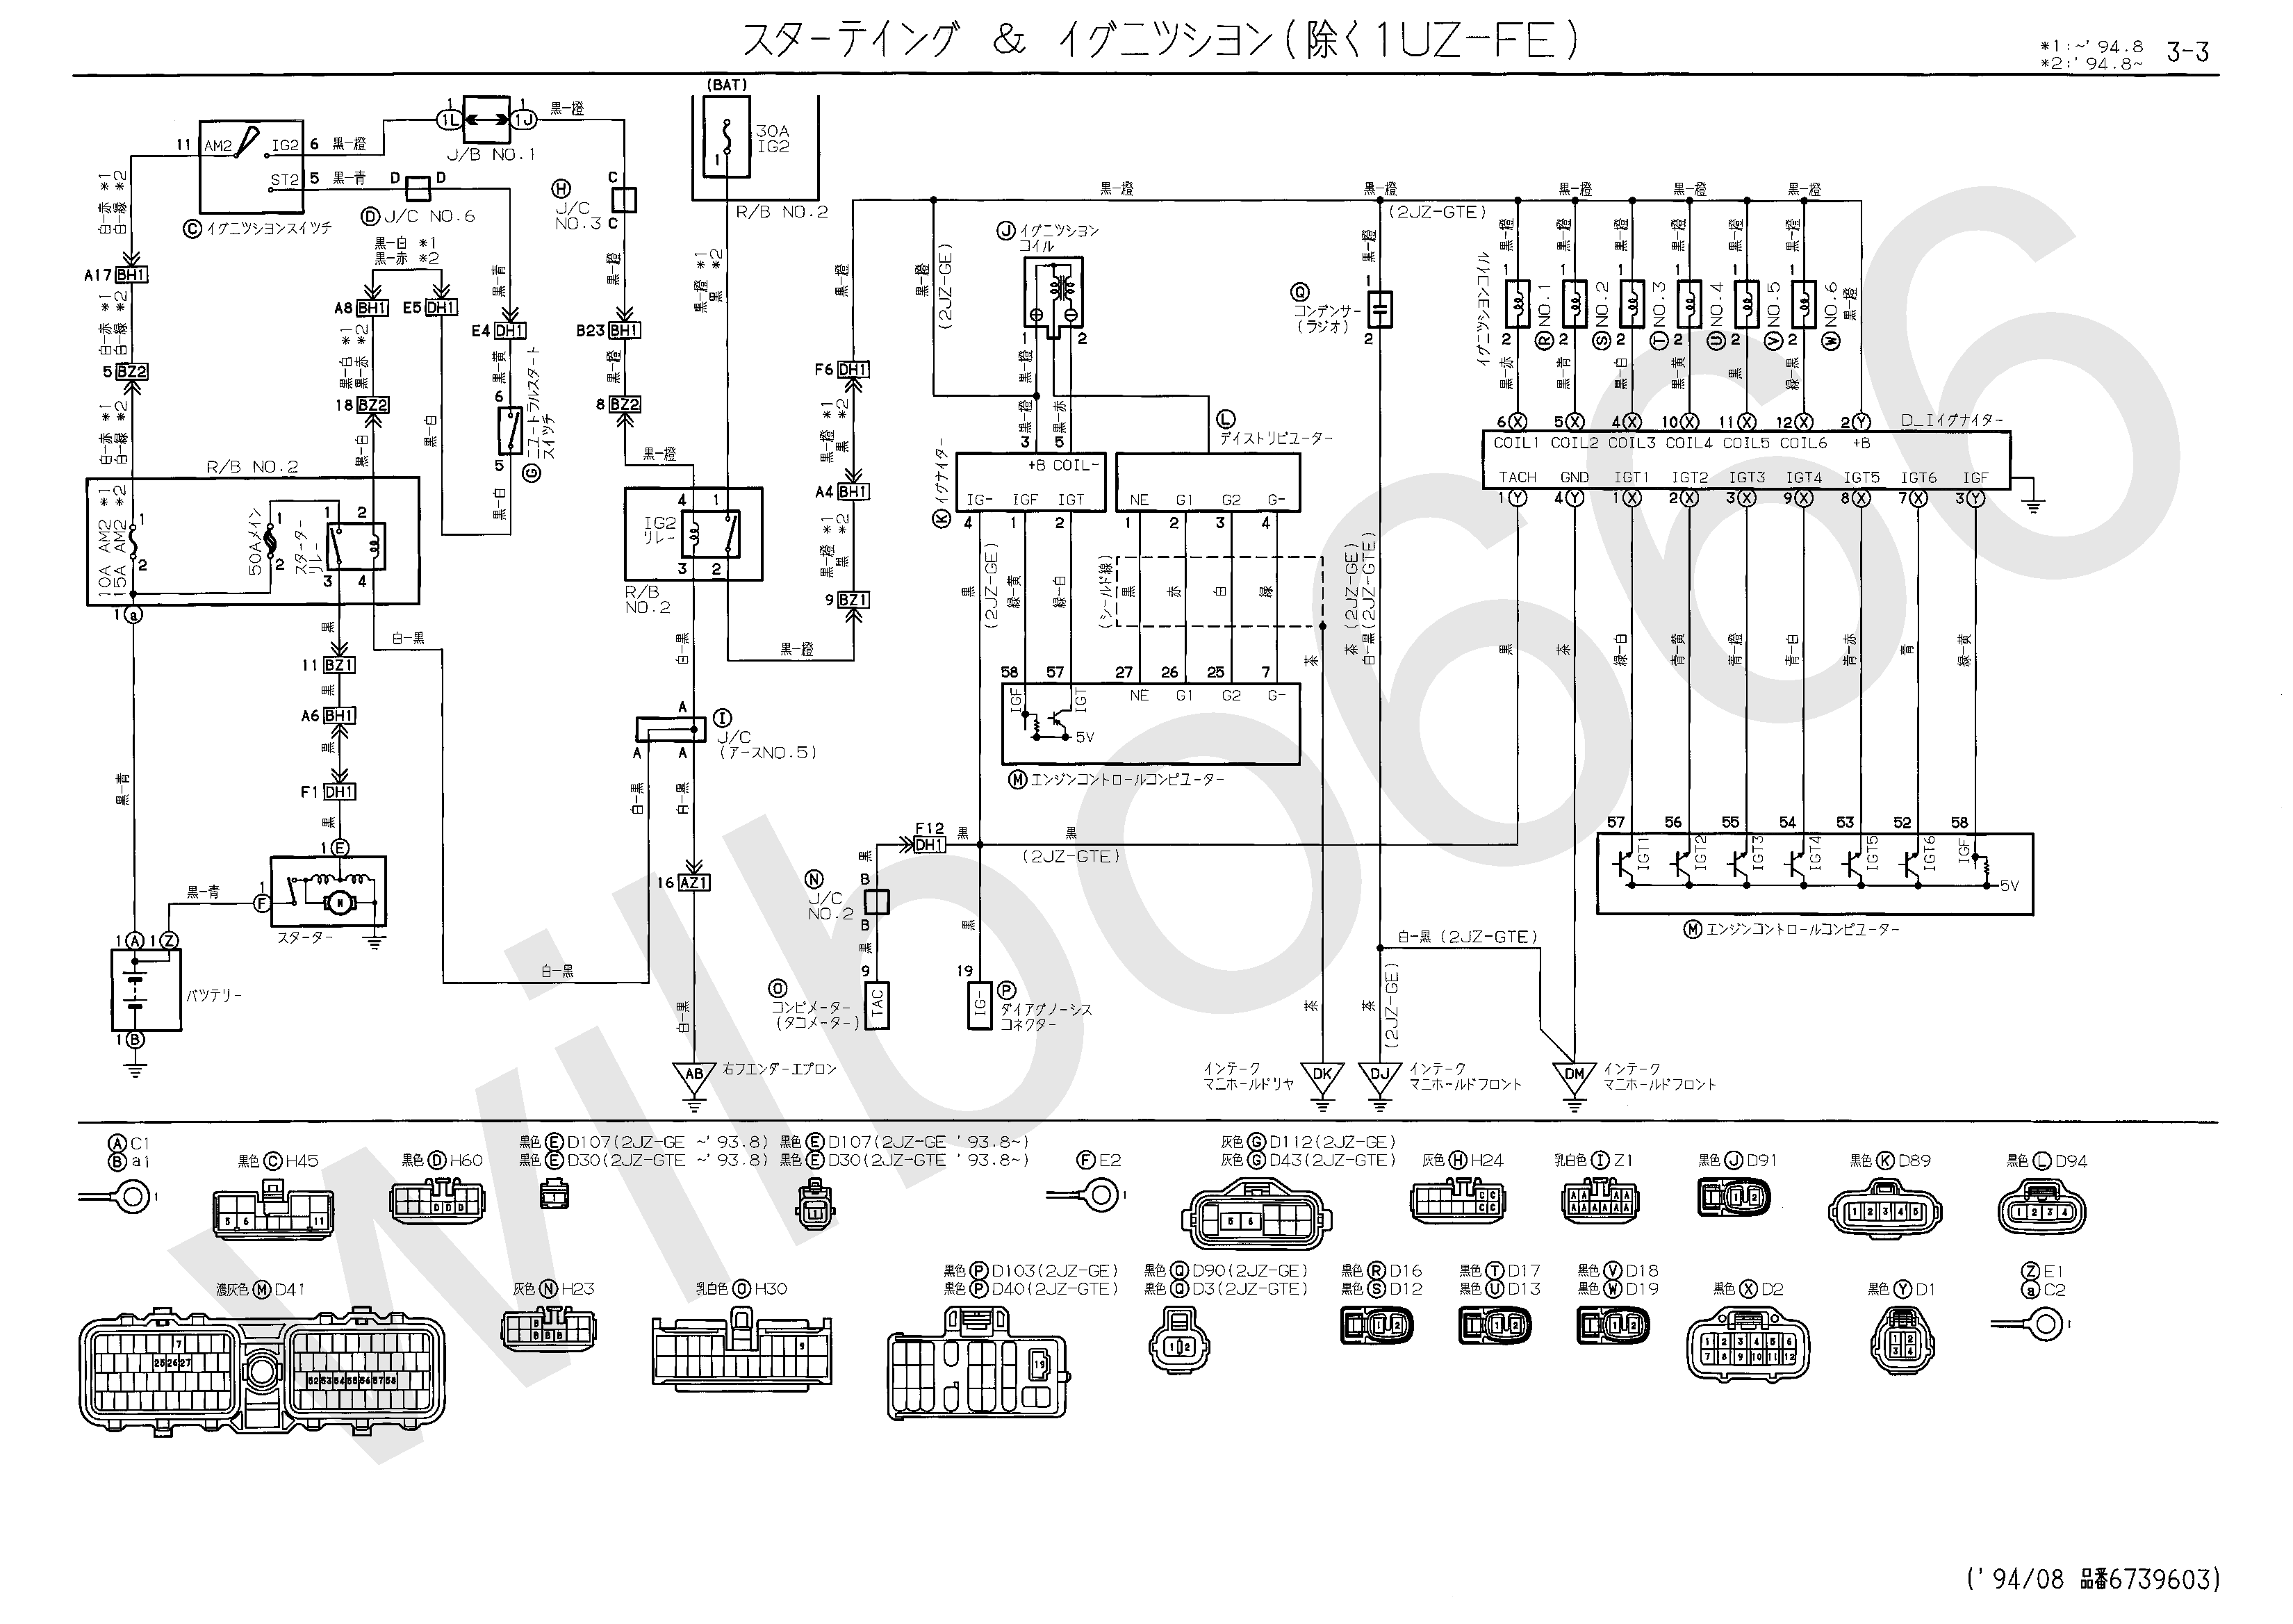 JZS14%23%2C UZS14%23 Electrical Wiring Diagram 6739604 3 3?resize\\\\\\\\\\\\\\\\\\\\\\\\\\\\\\\\\\\\\\\\\\\\\\\\\\\\\\\\\\\\\\\\\\\\\\\\\\\\\\\\\\\\\\\\\\\\\\\\\\\\\\\\\\\\\\\\\\\\\\\\\\\\\\\\\\\\\\\\\\\\\\\\\\\\\\\\\\\\\\\\\\\\\\\\\\\\\\\\\\\\\\\\\\\\\\\\\\\\\\\\\\\\\\\\\\\\\\\\\\\\\\\\\\\\\\\\\\\\\\\\\\\\\\\\\\\\\\\\\\\\\\\\\\\\\\\\\\\\\\\\\\\\\\\\\\\\\\\\\\\\\\\\\\\\\\\\\\\\\\\\\\\\\\\\\\\\\\\\\\\\\\\\\\\\\\\\\\\\\\\\\\\\\\\\\\\\\\\\\\\\\\\\\\\\\\\\\\\\\\\\\\\\\\\\\\\\\\\\\\\\\\\\\\\\\\\\\\\\\\\\\\\\\\\\\=665%2C471 rb26 wiring diagram rb26 wiring harness diagram \u2022 wiring diagrams little flying fighter alarm wiring diagram at crackthecode.co